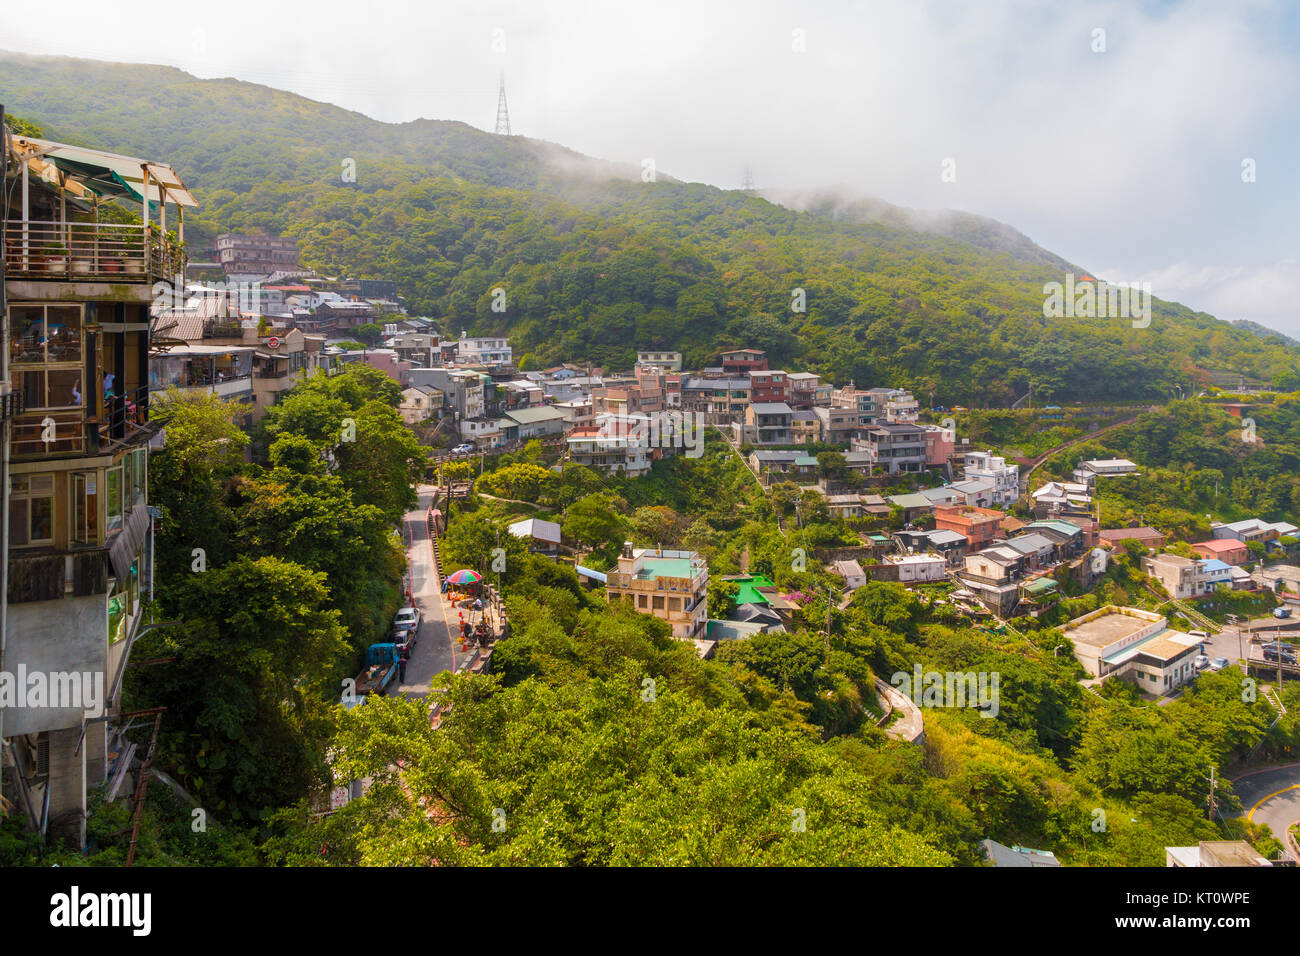 View of Jiufen or Jioufen, a small town  in the Ruifang District, New Taipei, Taiwan. It served as inspiration for Stock Photo